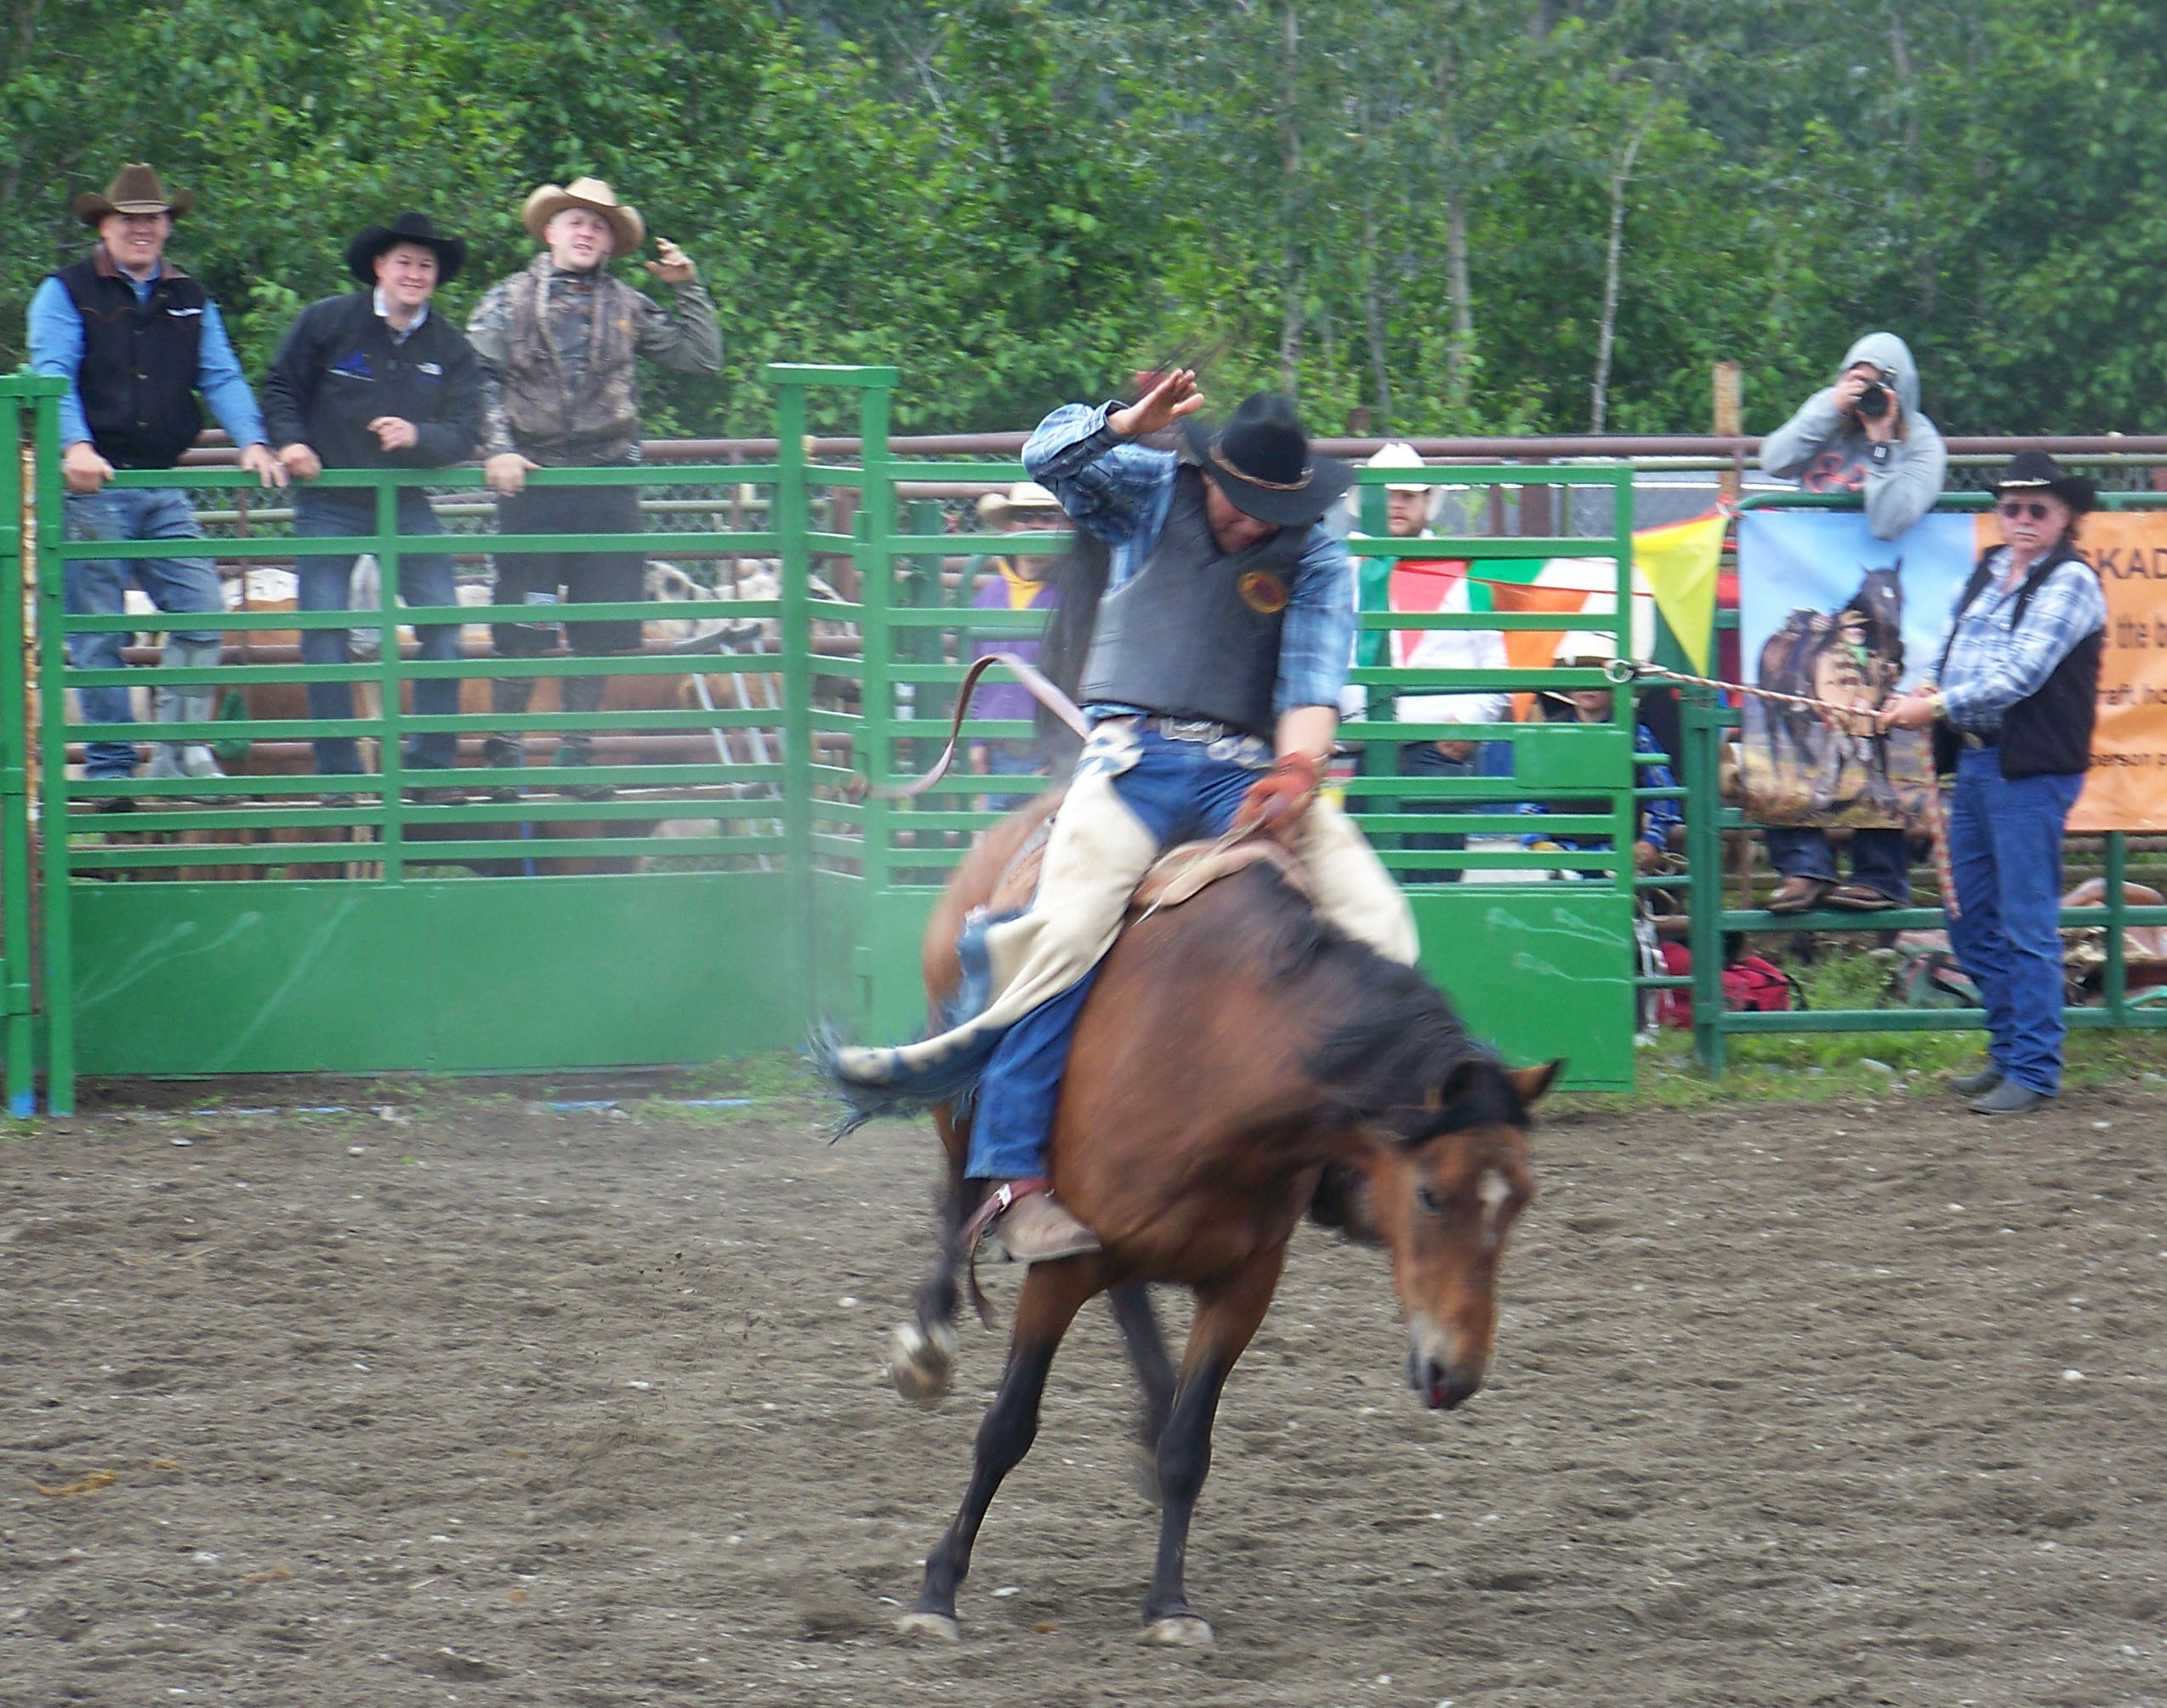 Ninilchik rodeo family camaraderie is evident in each event, whether it's a young cowboy experiencing the thrill of calf riding, a bull rider trying to hang on for eight seconds, or the two-member teams in the roping competitions.-Photo by McKibben Jackinsky, Homer News